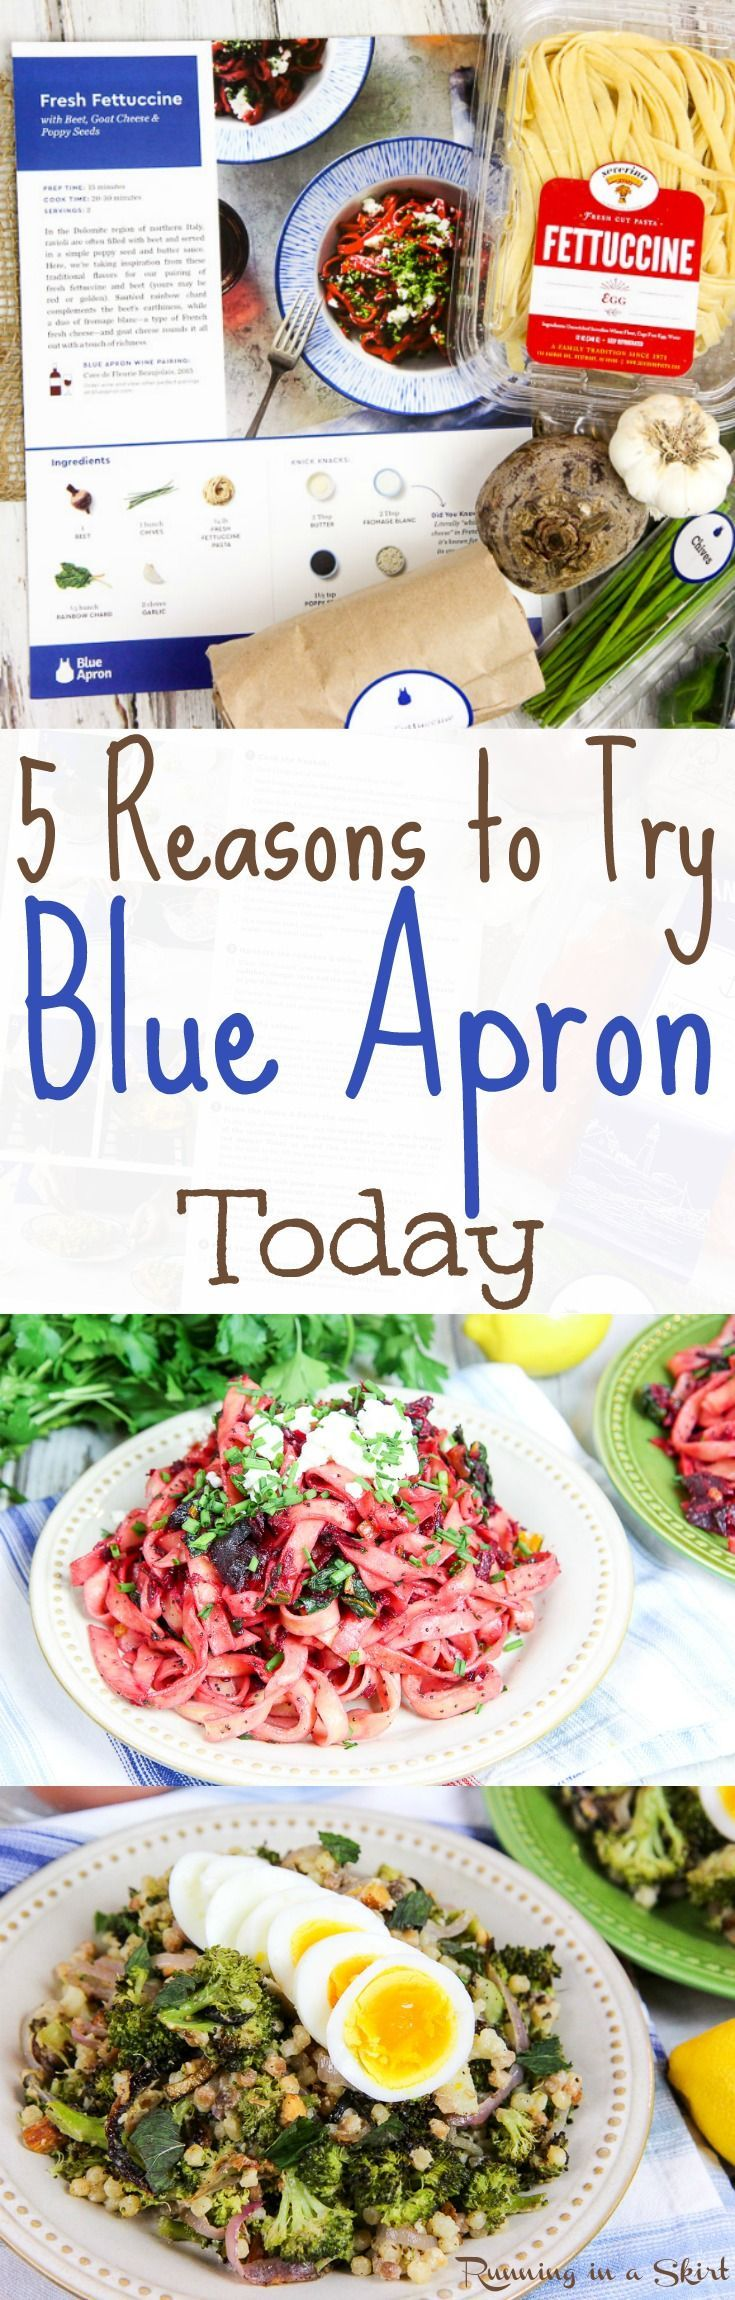 Blue apron voucher